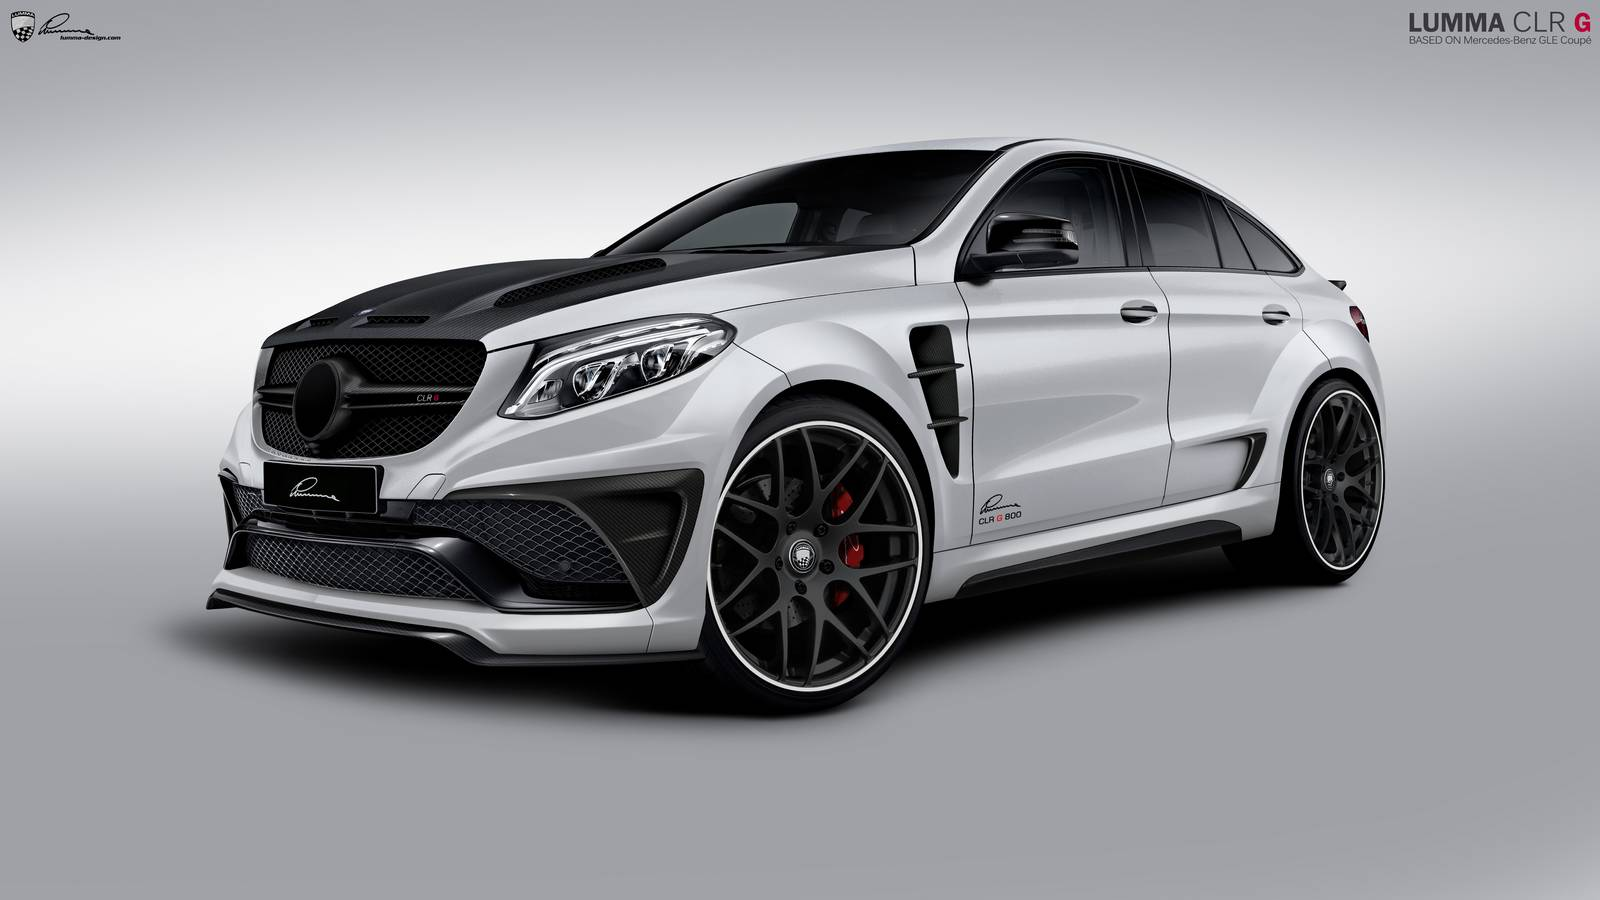 Official Lumma Clr G800 Mercedes Amg Gle63 Coupe Gtspirit